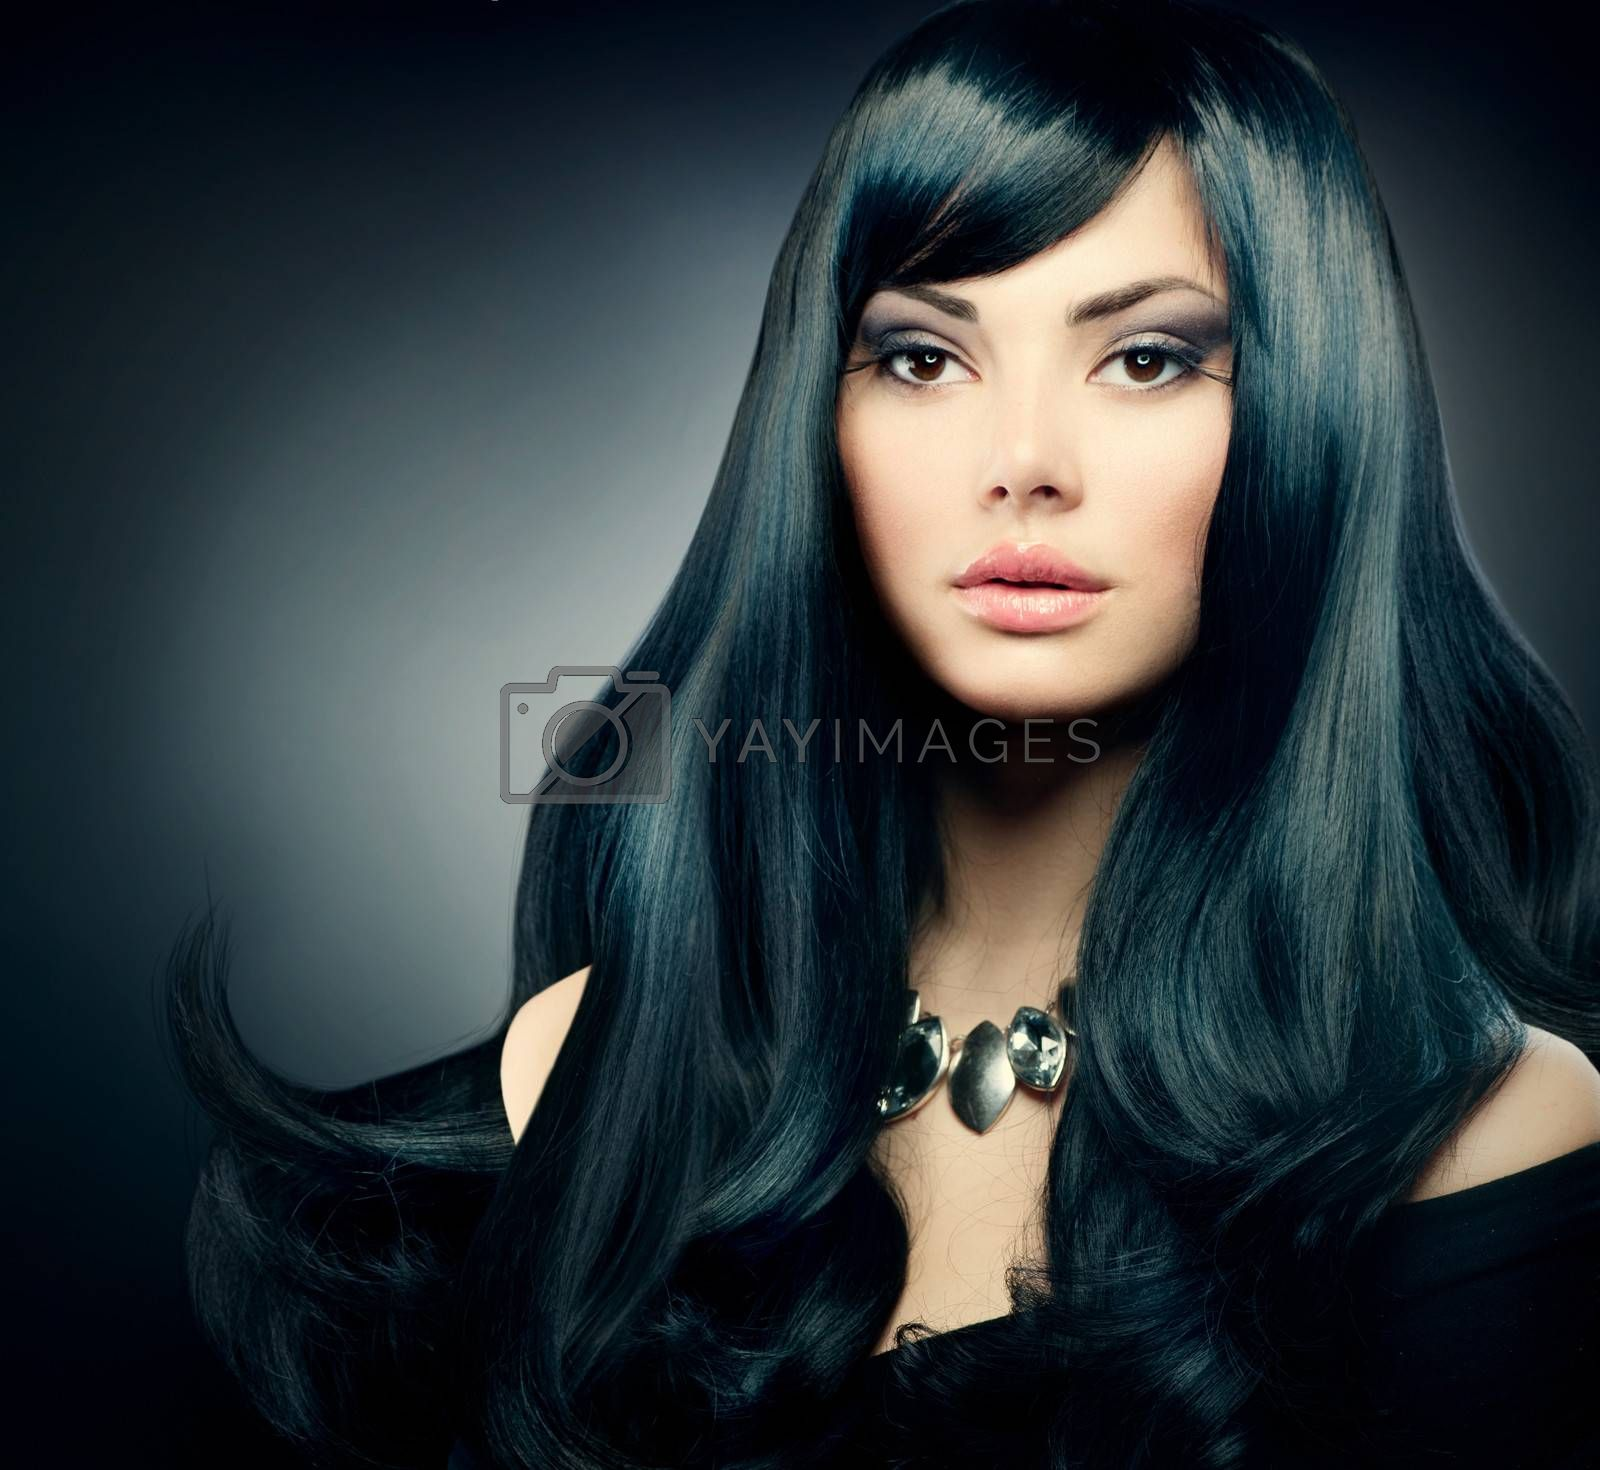 Brunette Luxury Girl. Healthy Long Black Hair and Holiday Makeup by Subbotina Anna